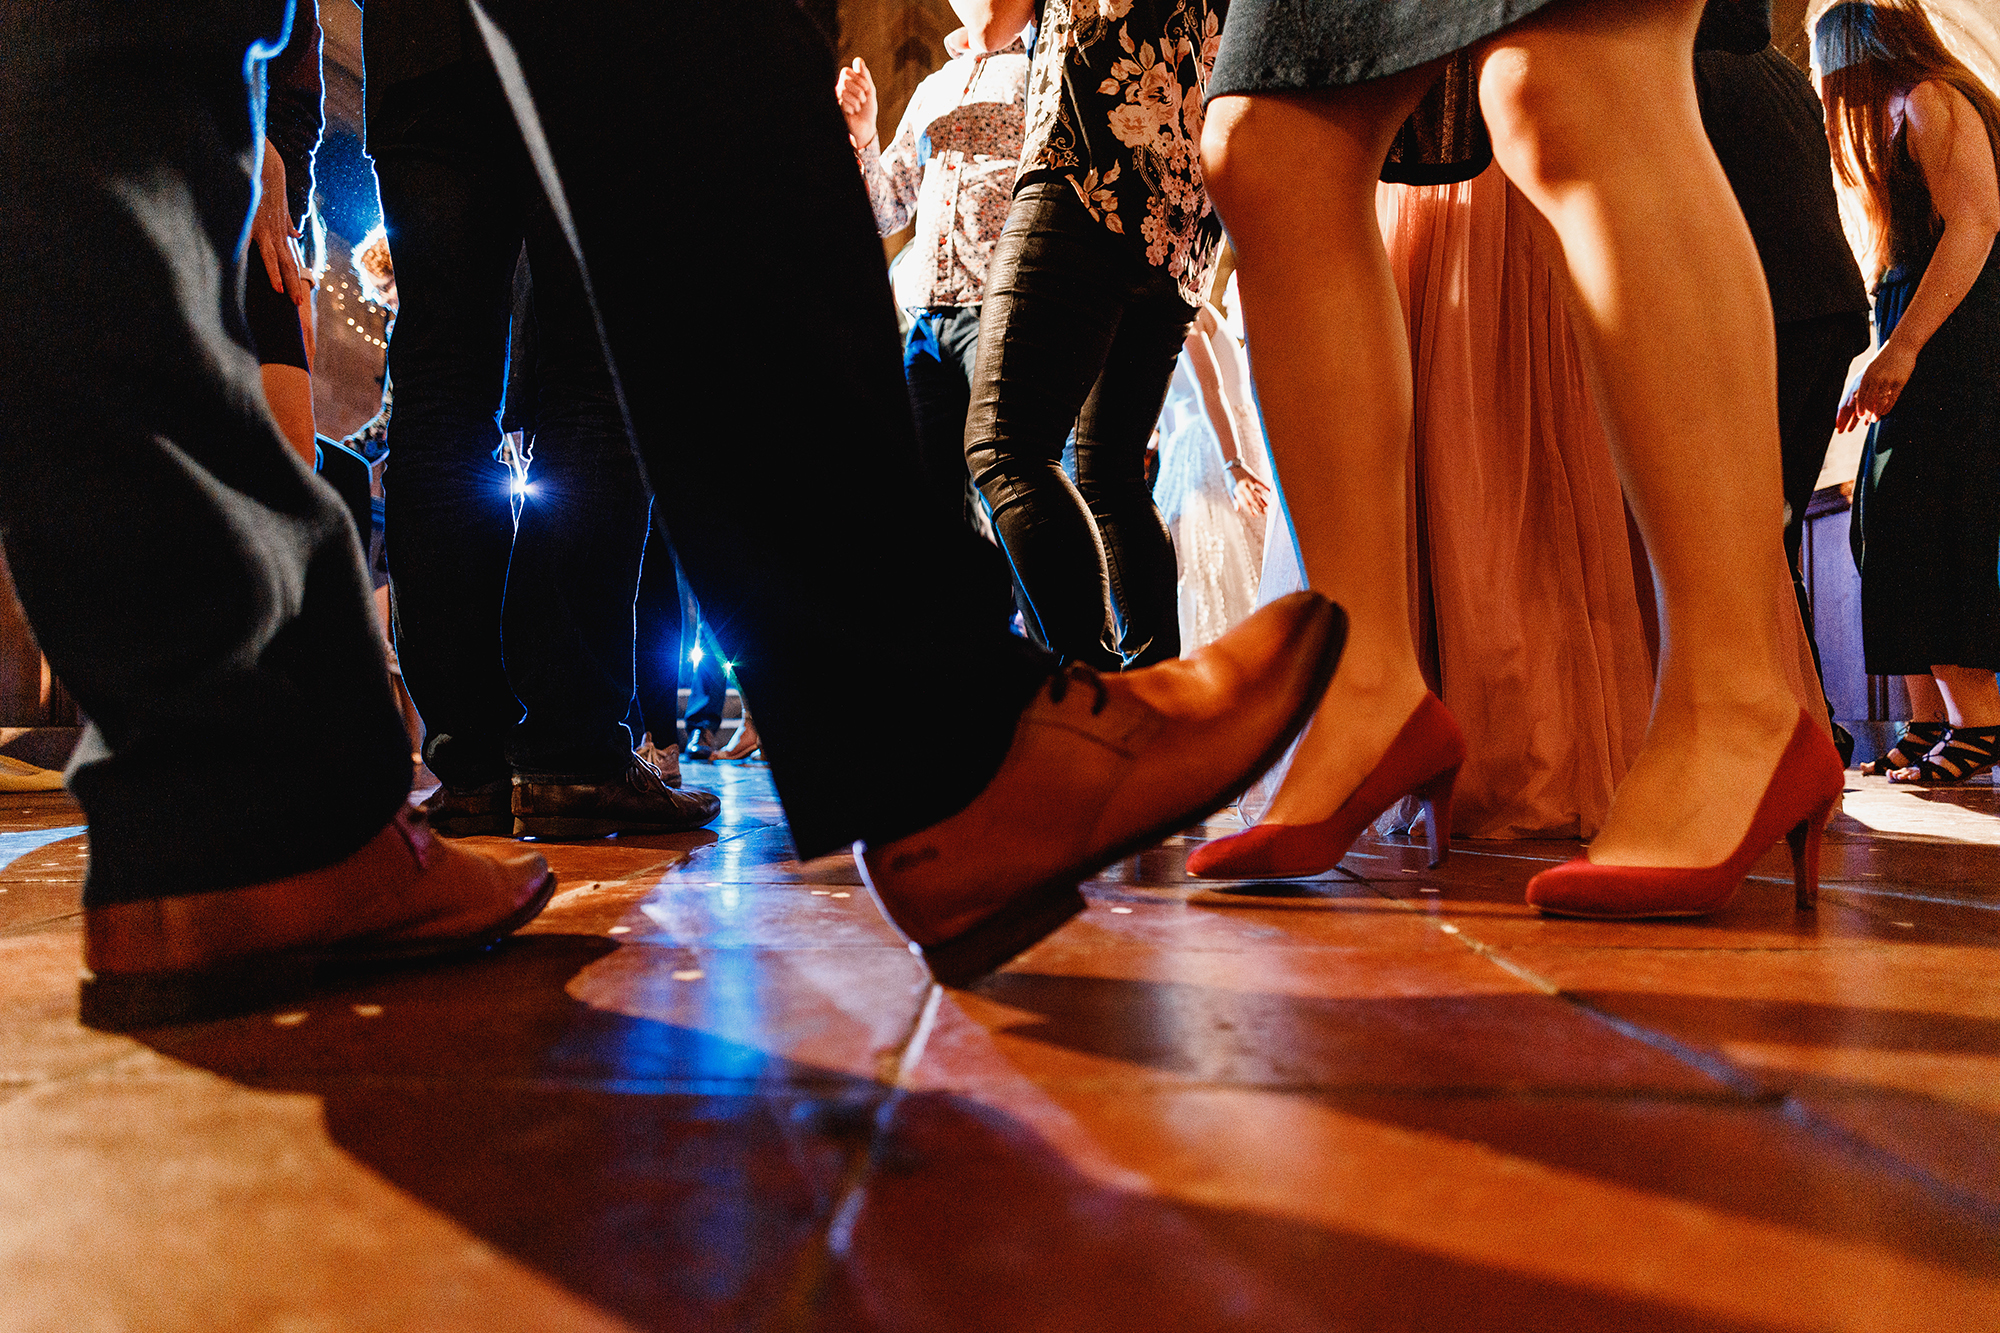 A low angle image of feet dancing at a wedding reception